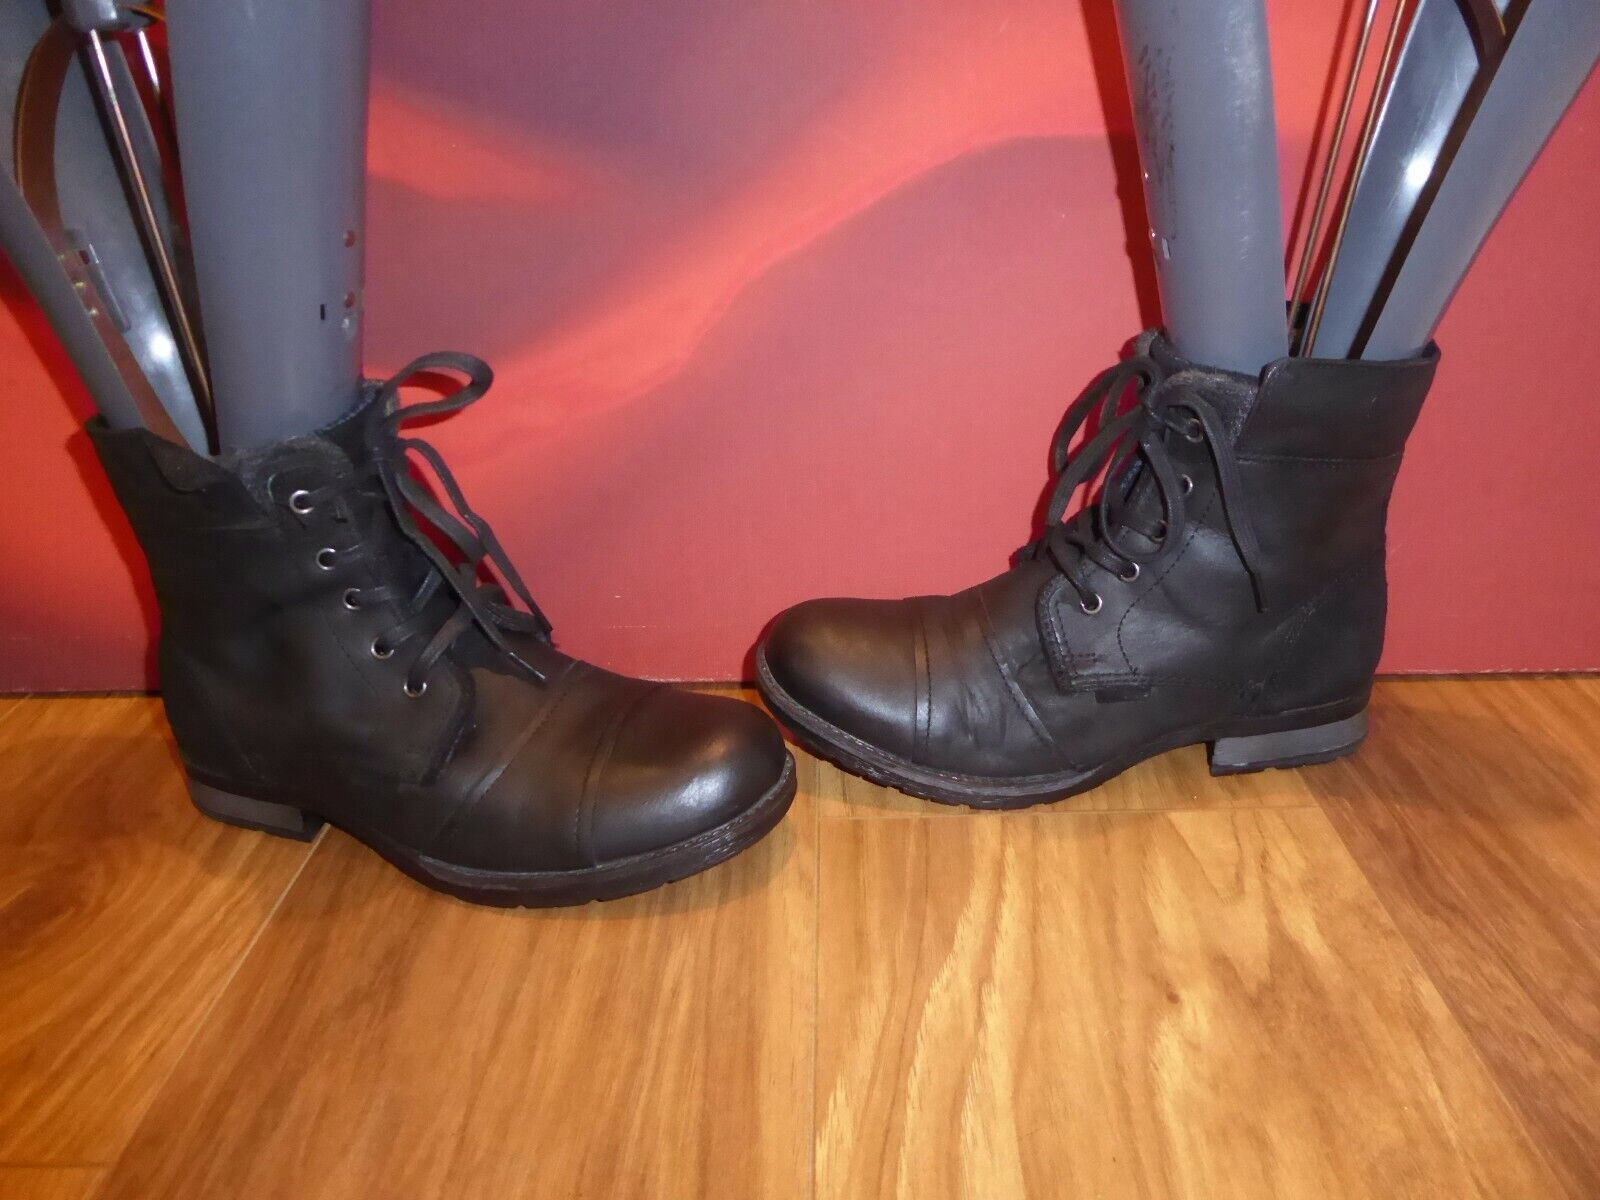 30 RIVER ISLAND black  leather combat style ankle  boots UK 4 EU 37